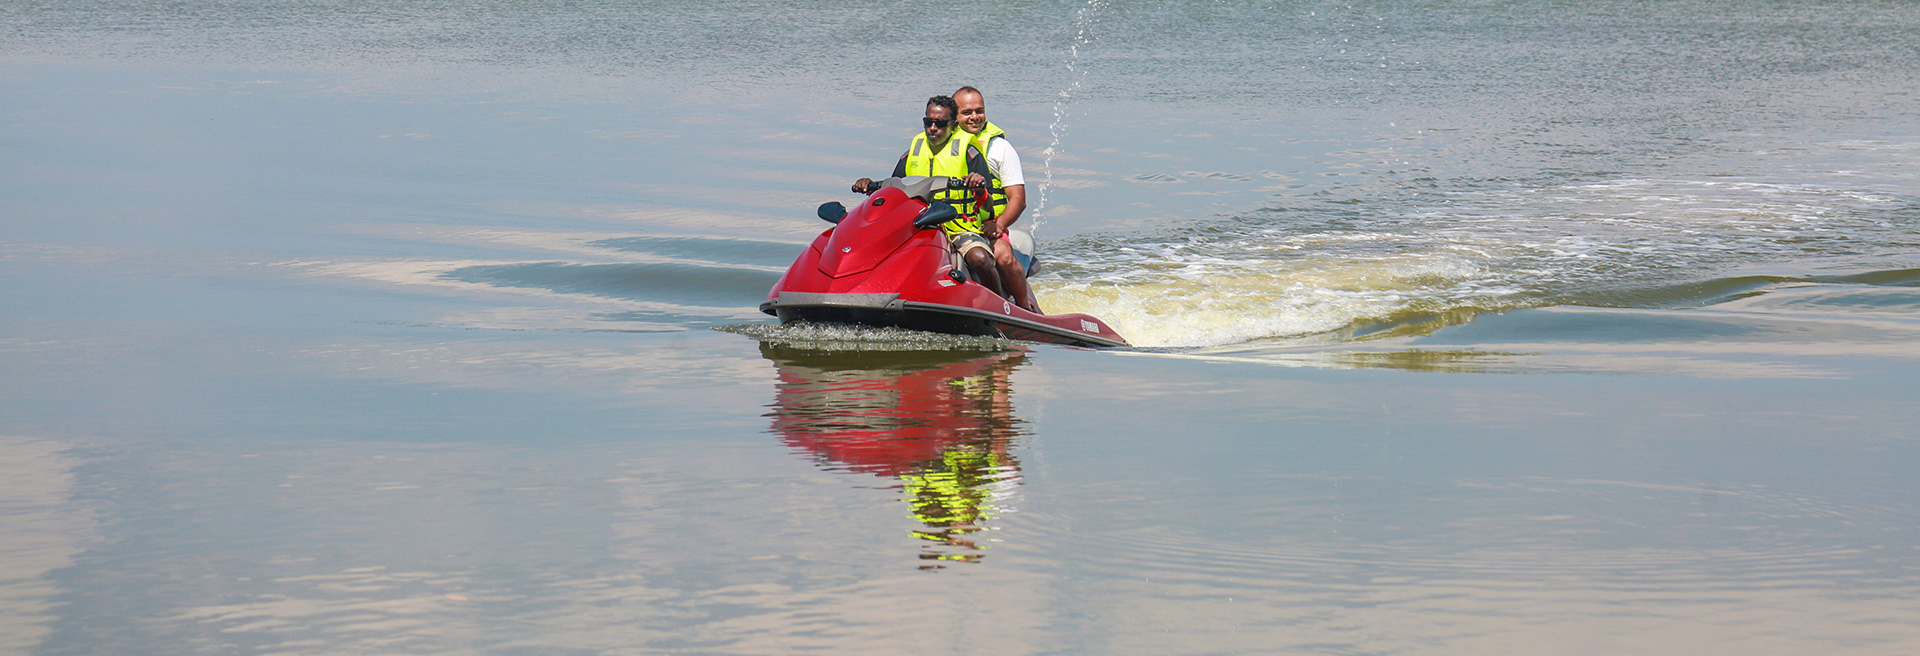 instructor taking a customer on a ride on a Jet Ski